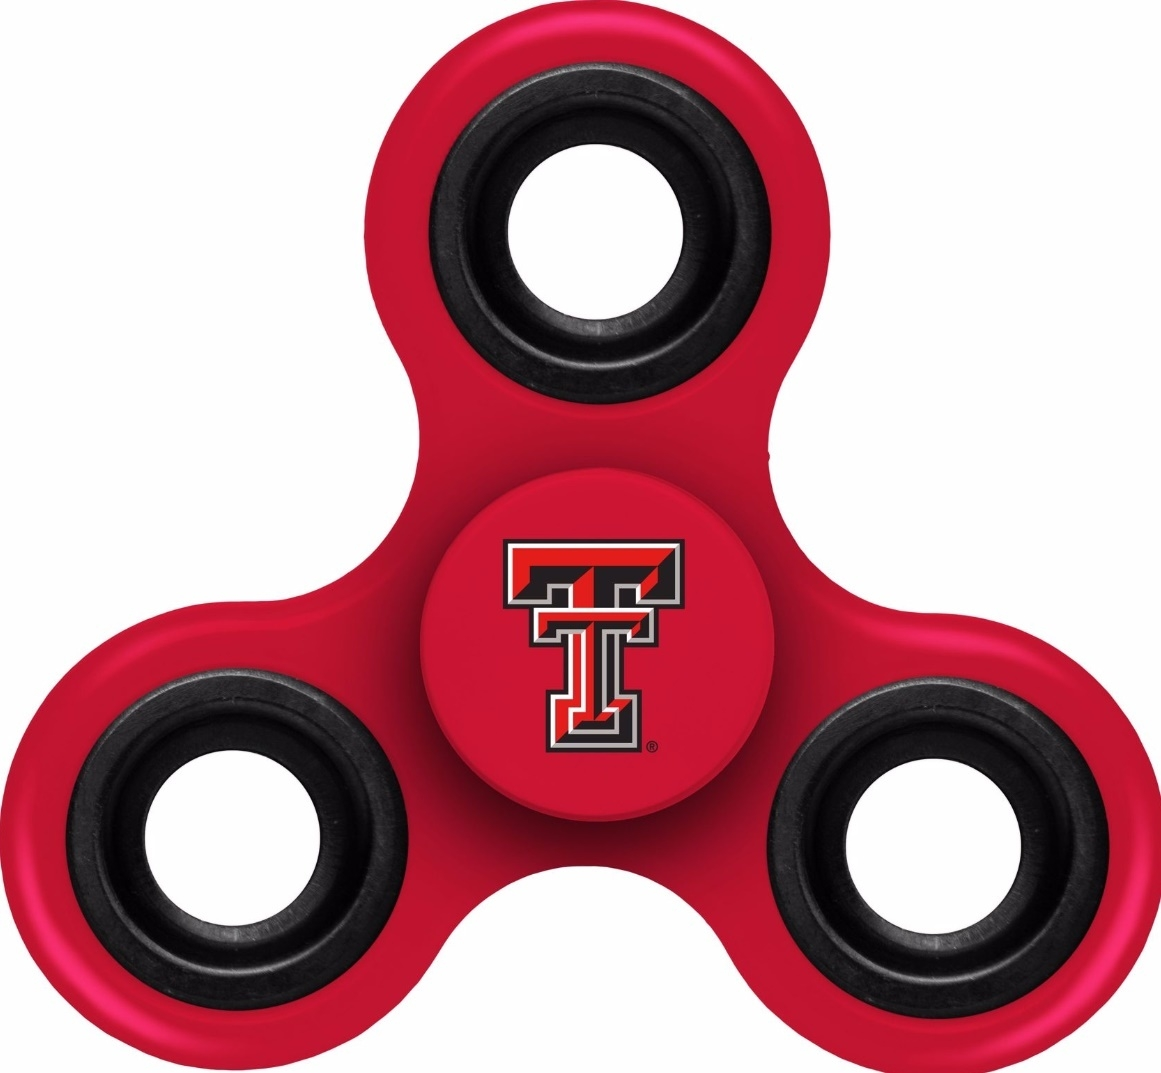 Texas Tech Red Raiders Spinnerz Three Way Diztracto - 9141851278 - Ncaa College Texas Tech Ttu Red Raiders Toys Games Puzzles Games 9141851278